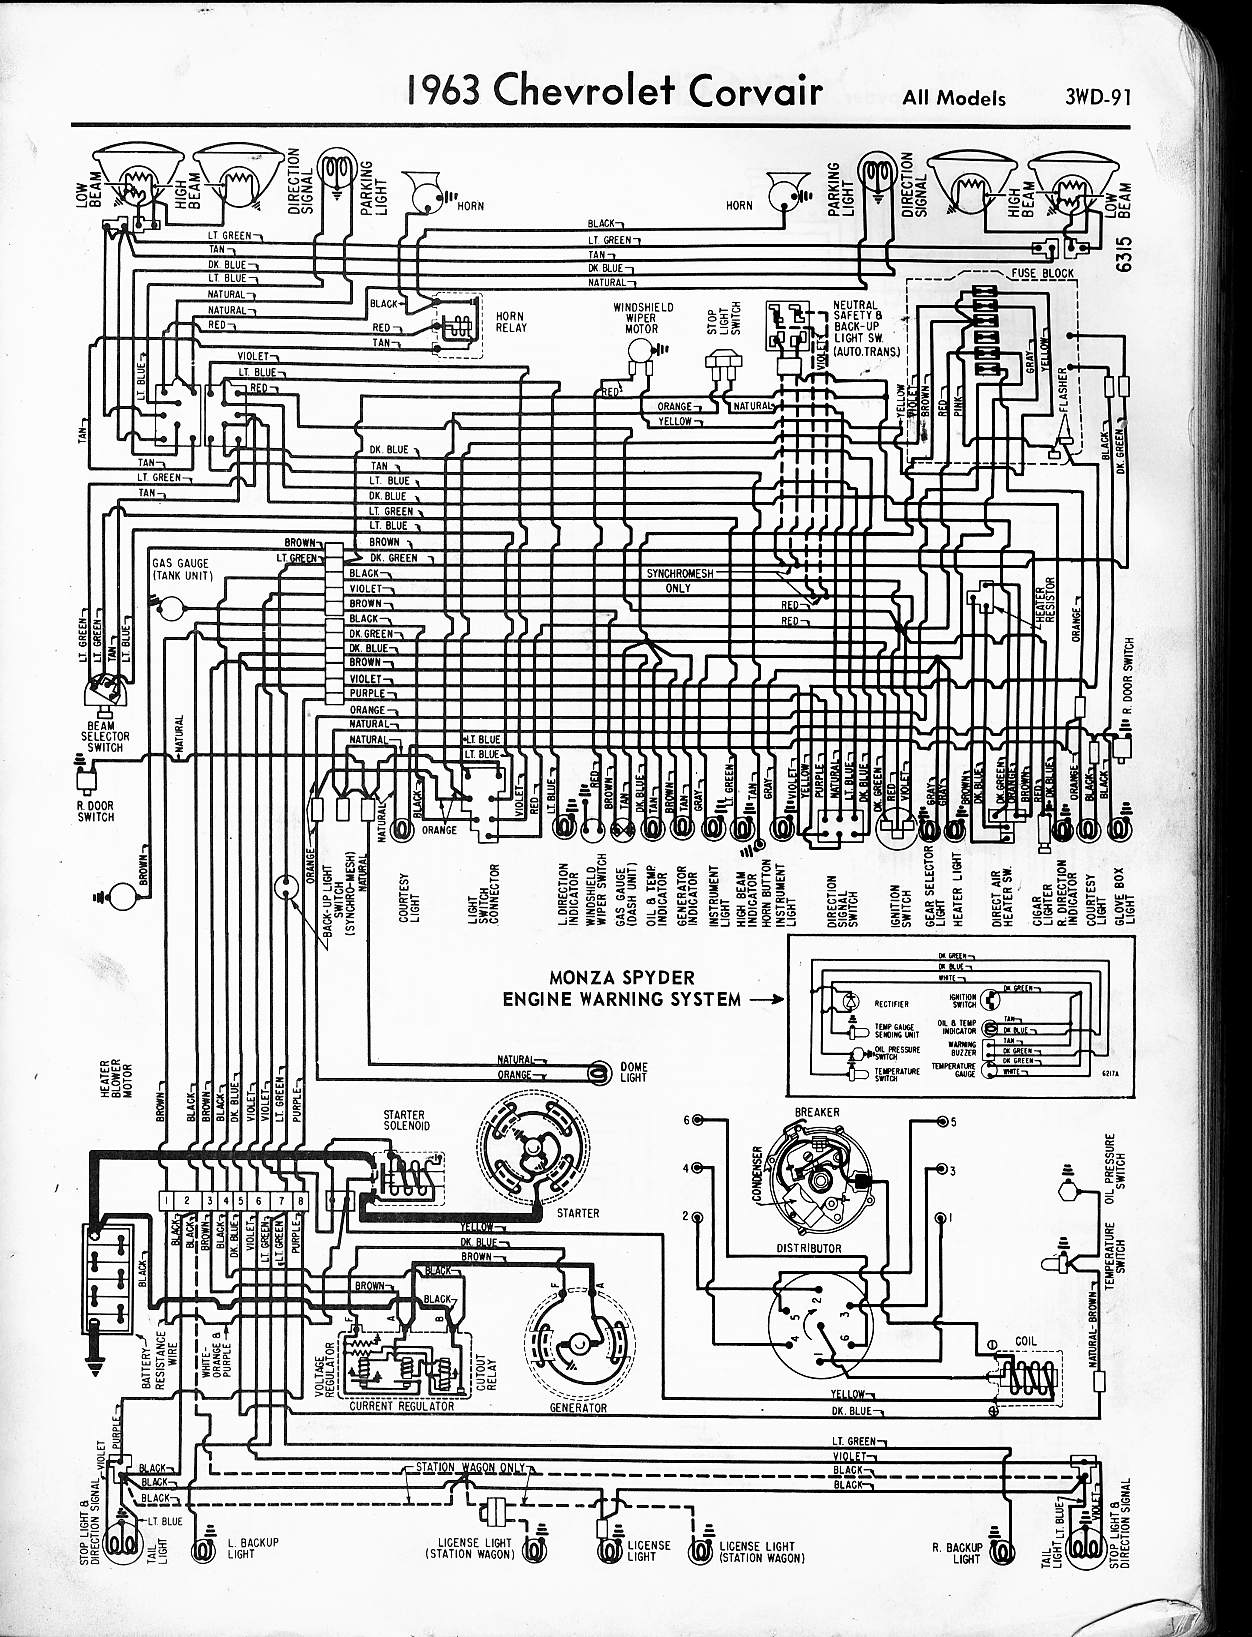 1964 chevy nova wiring diagram star delta starter 3 phase 1963